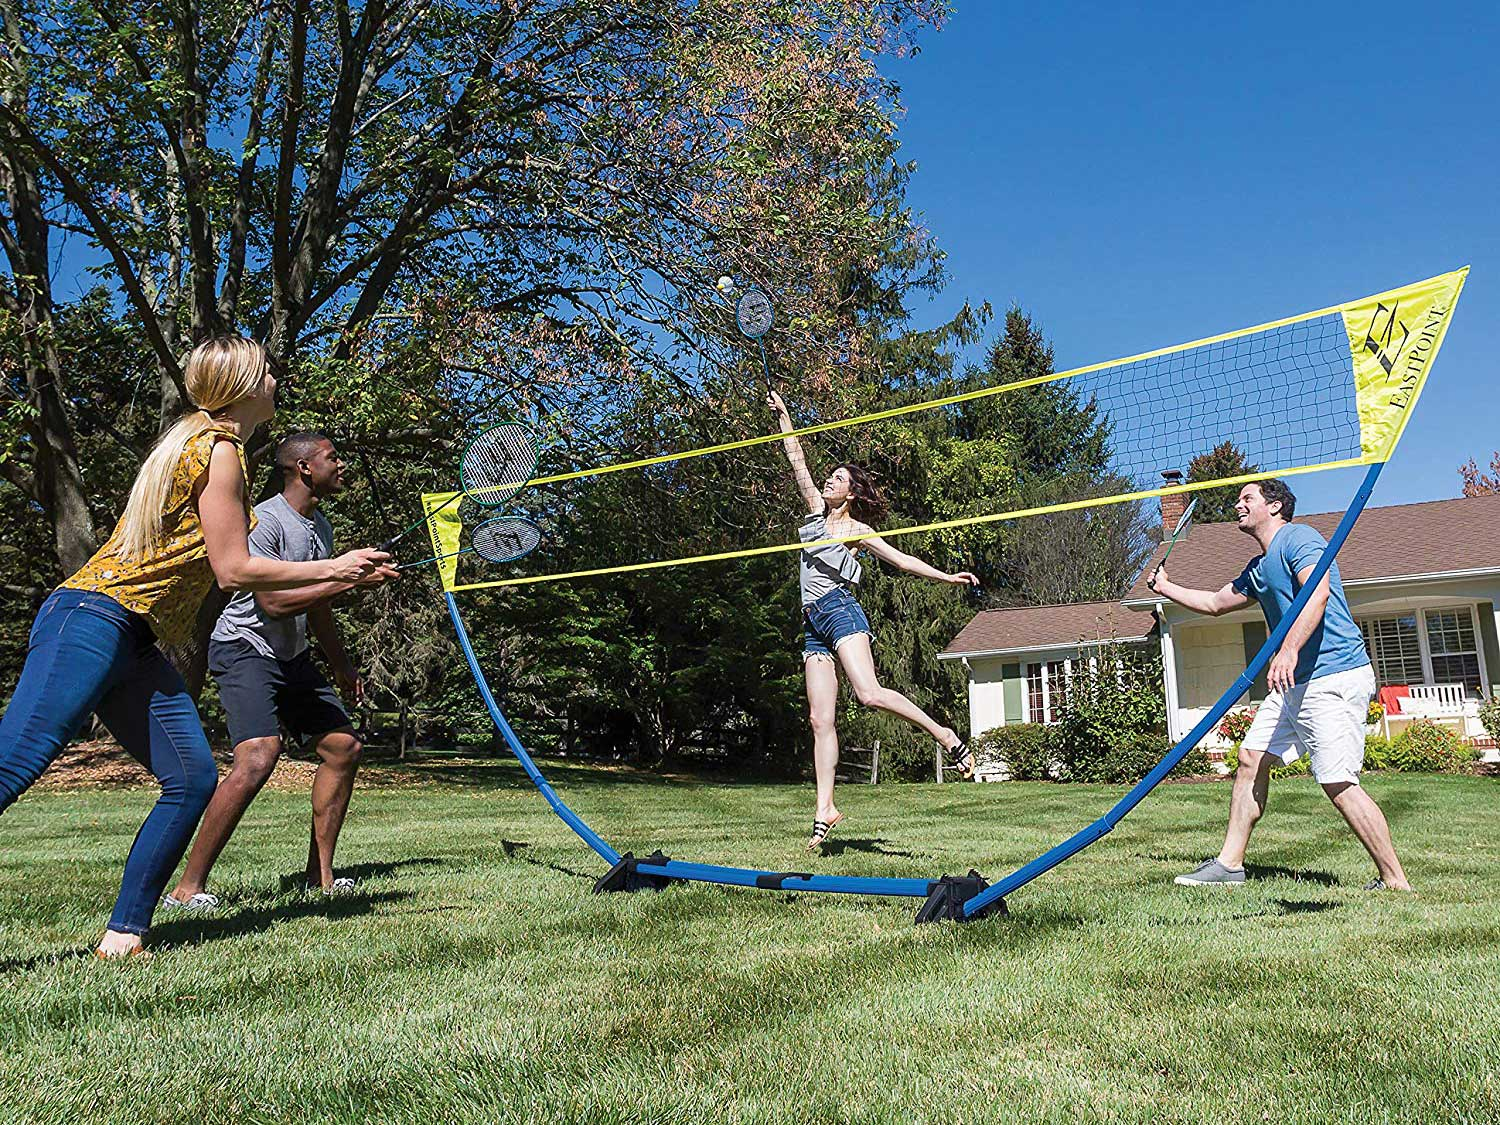 Playing Badminton with a net and set.